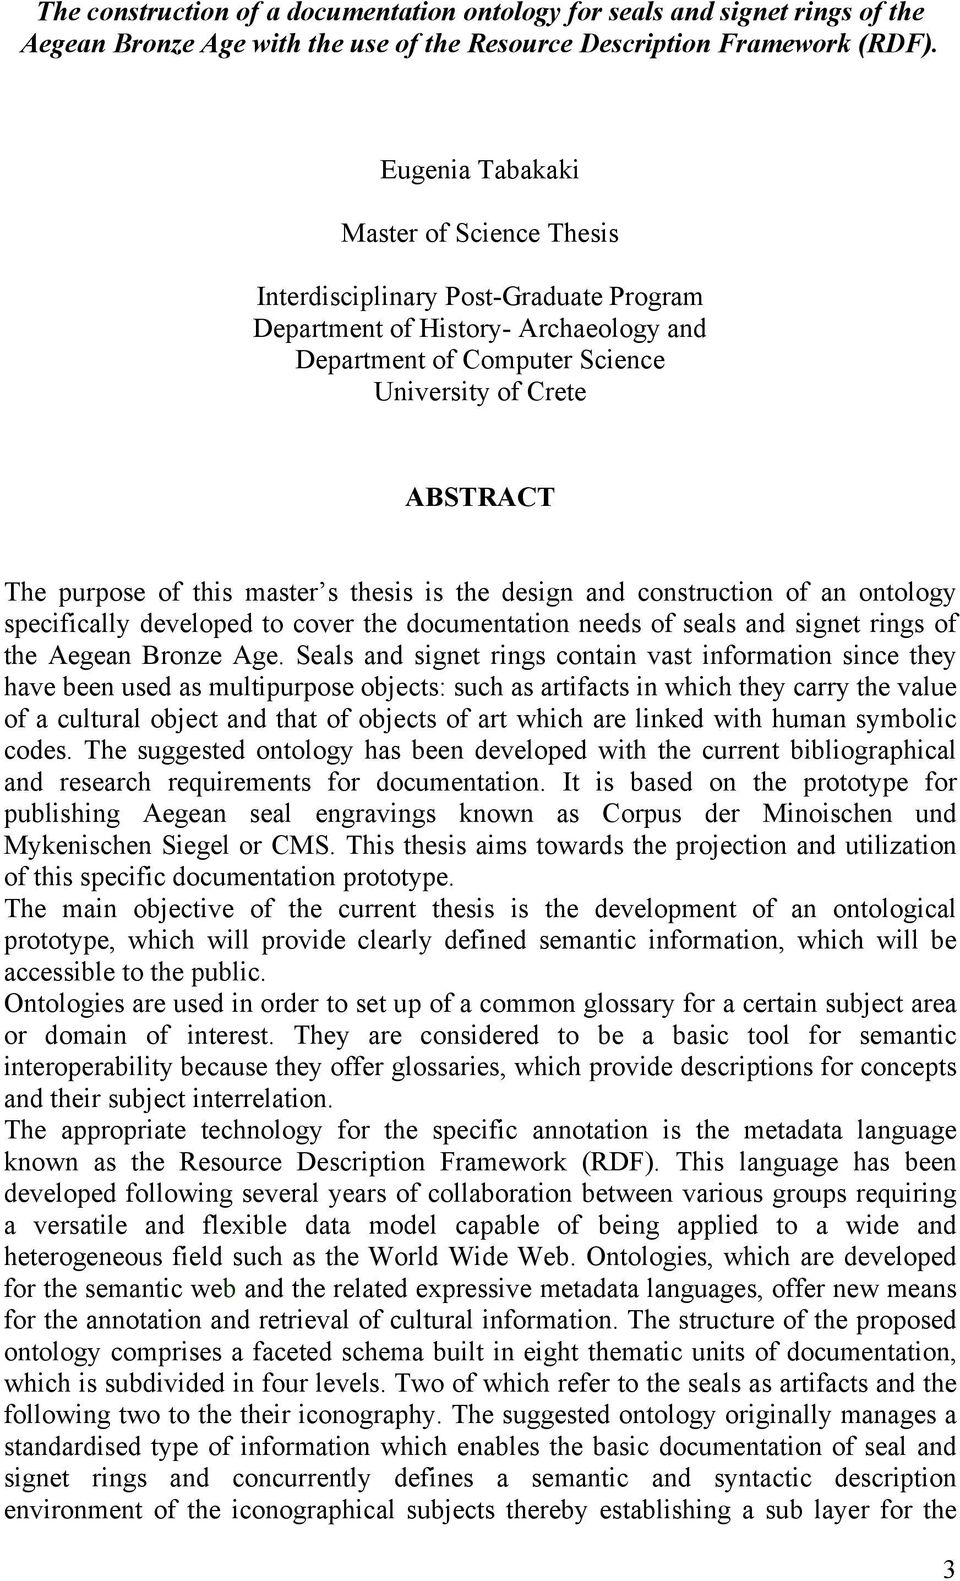 this master s thesis is the design and construction of an ontology specifically developed to cover the documentation needs of seals and signet rings of the Aegean Bronze Age.